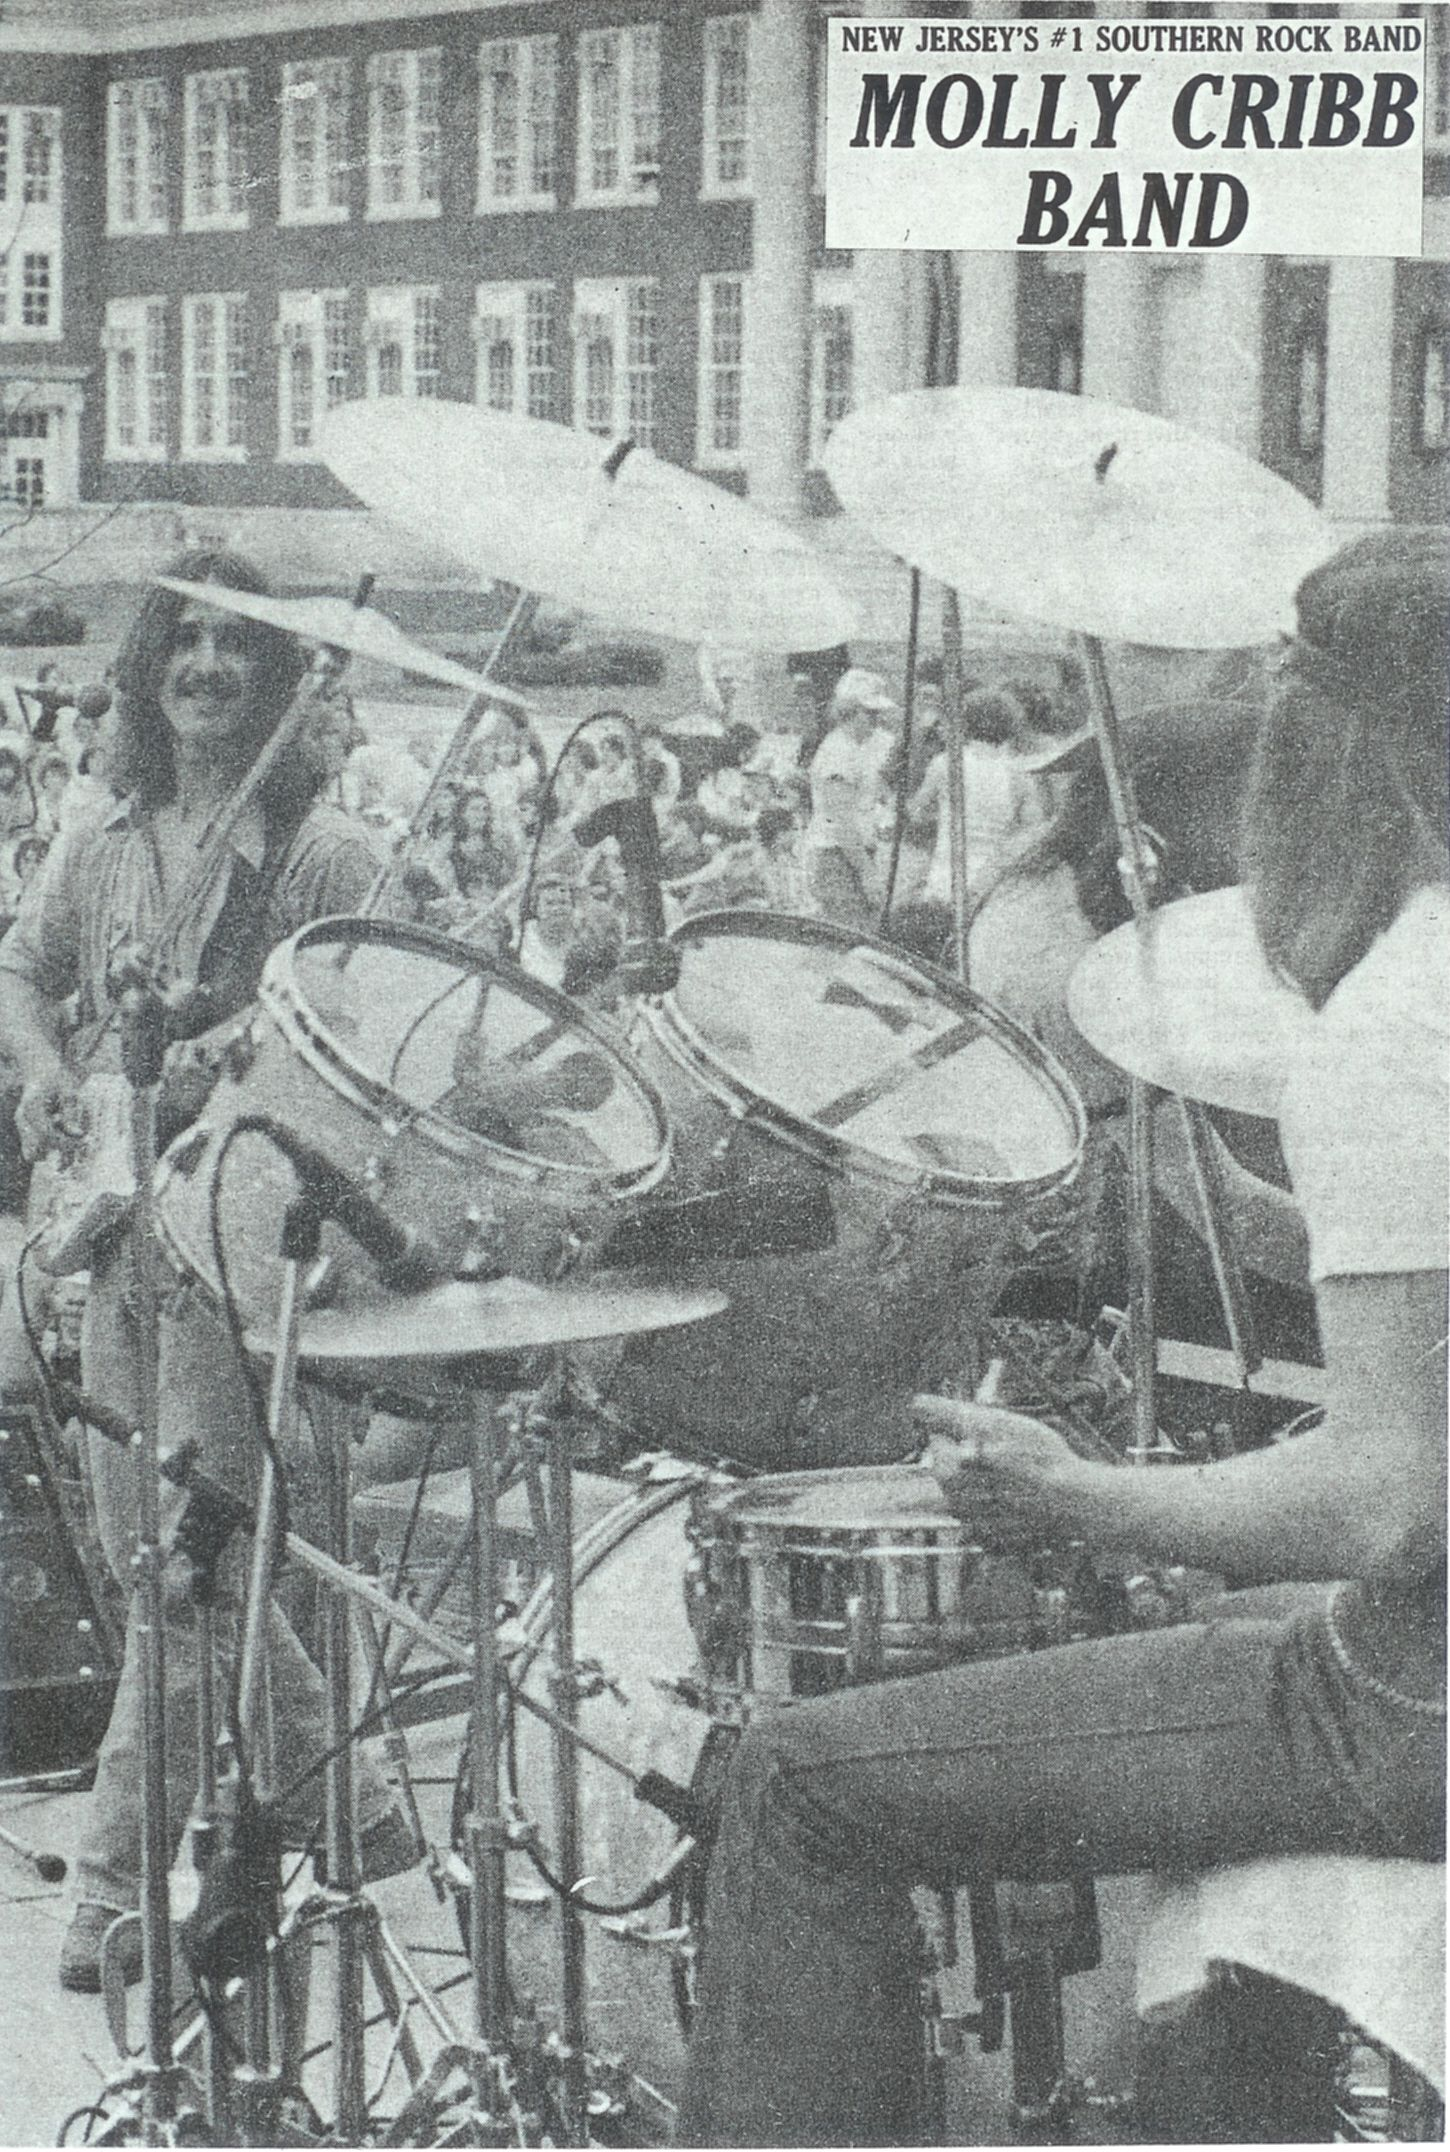 The Molly Cribb Band at Trenton State College that is now The ...